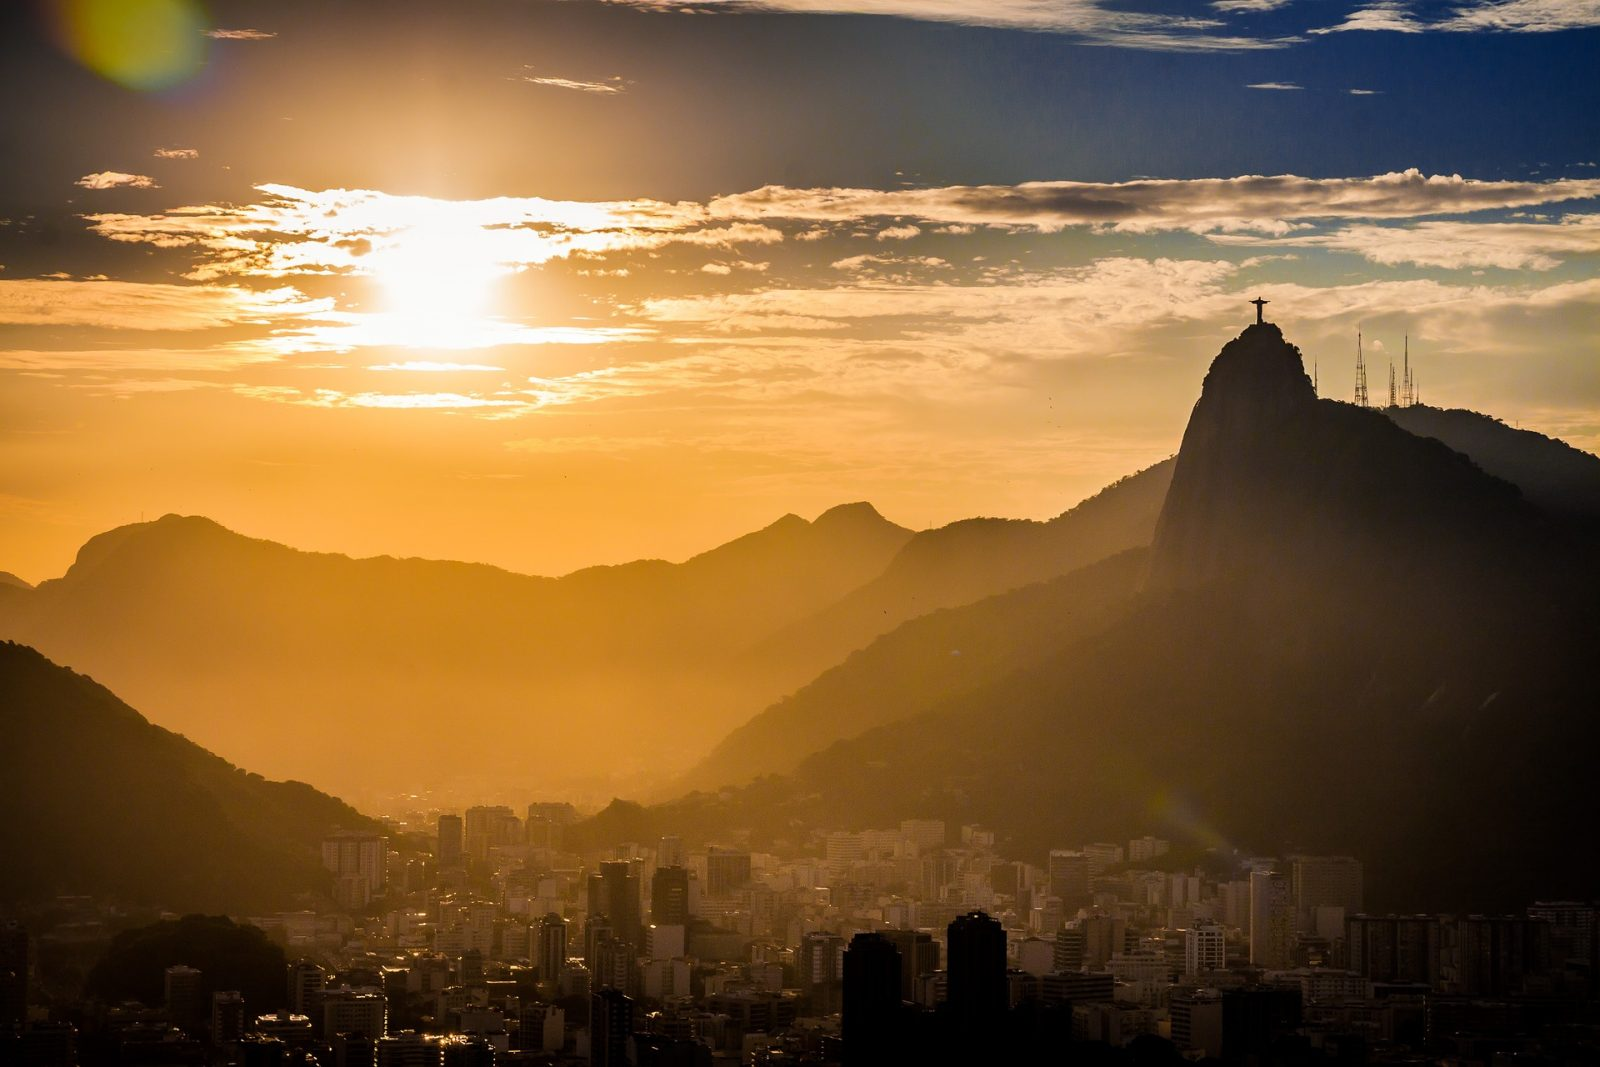 Hike to Christ the redeemer: Start your hike early to avoid the crowds